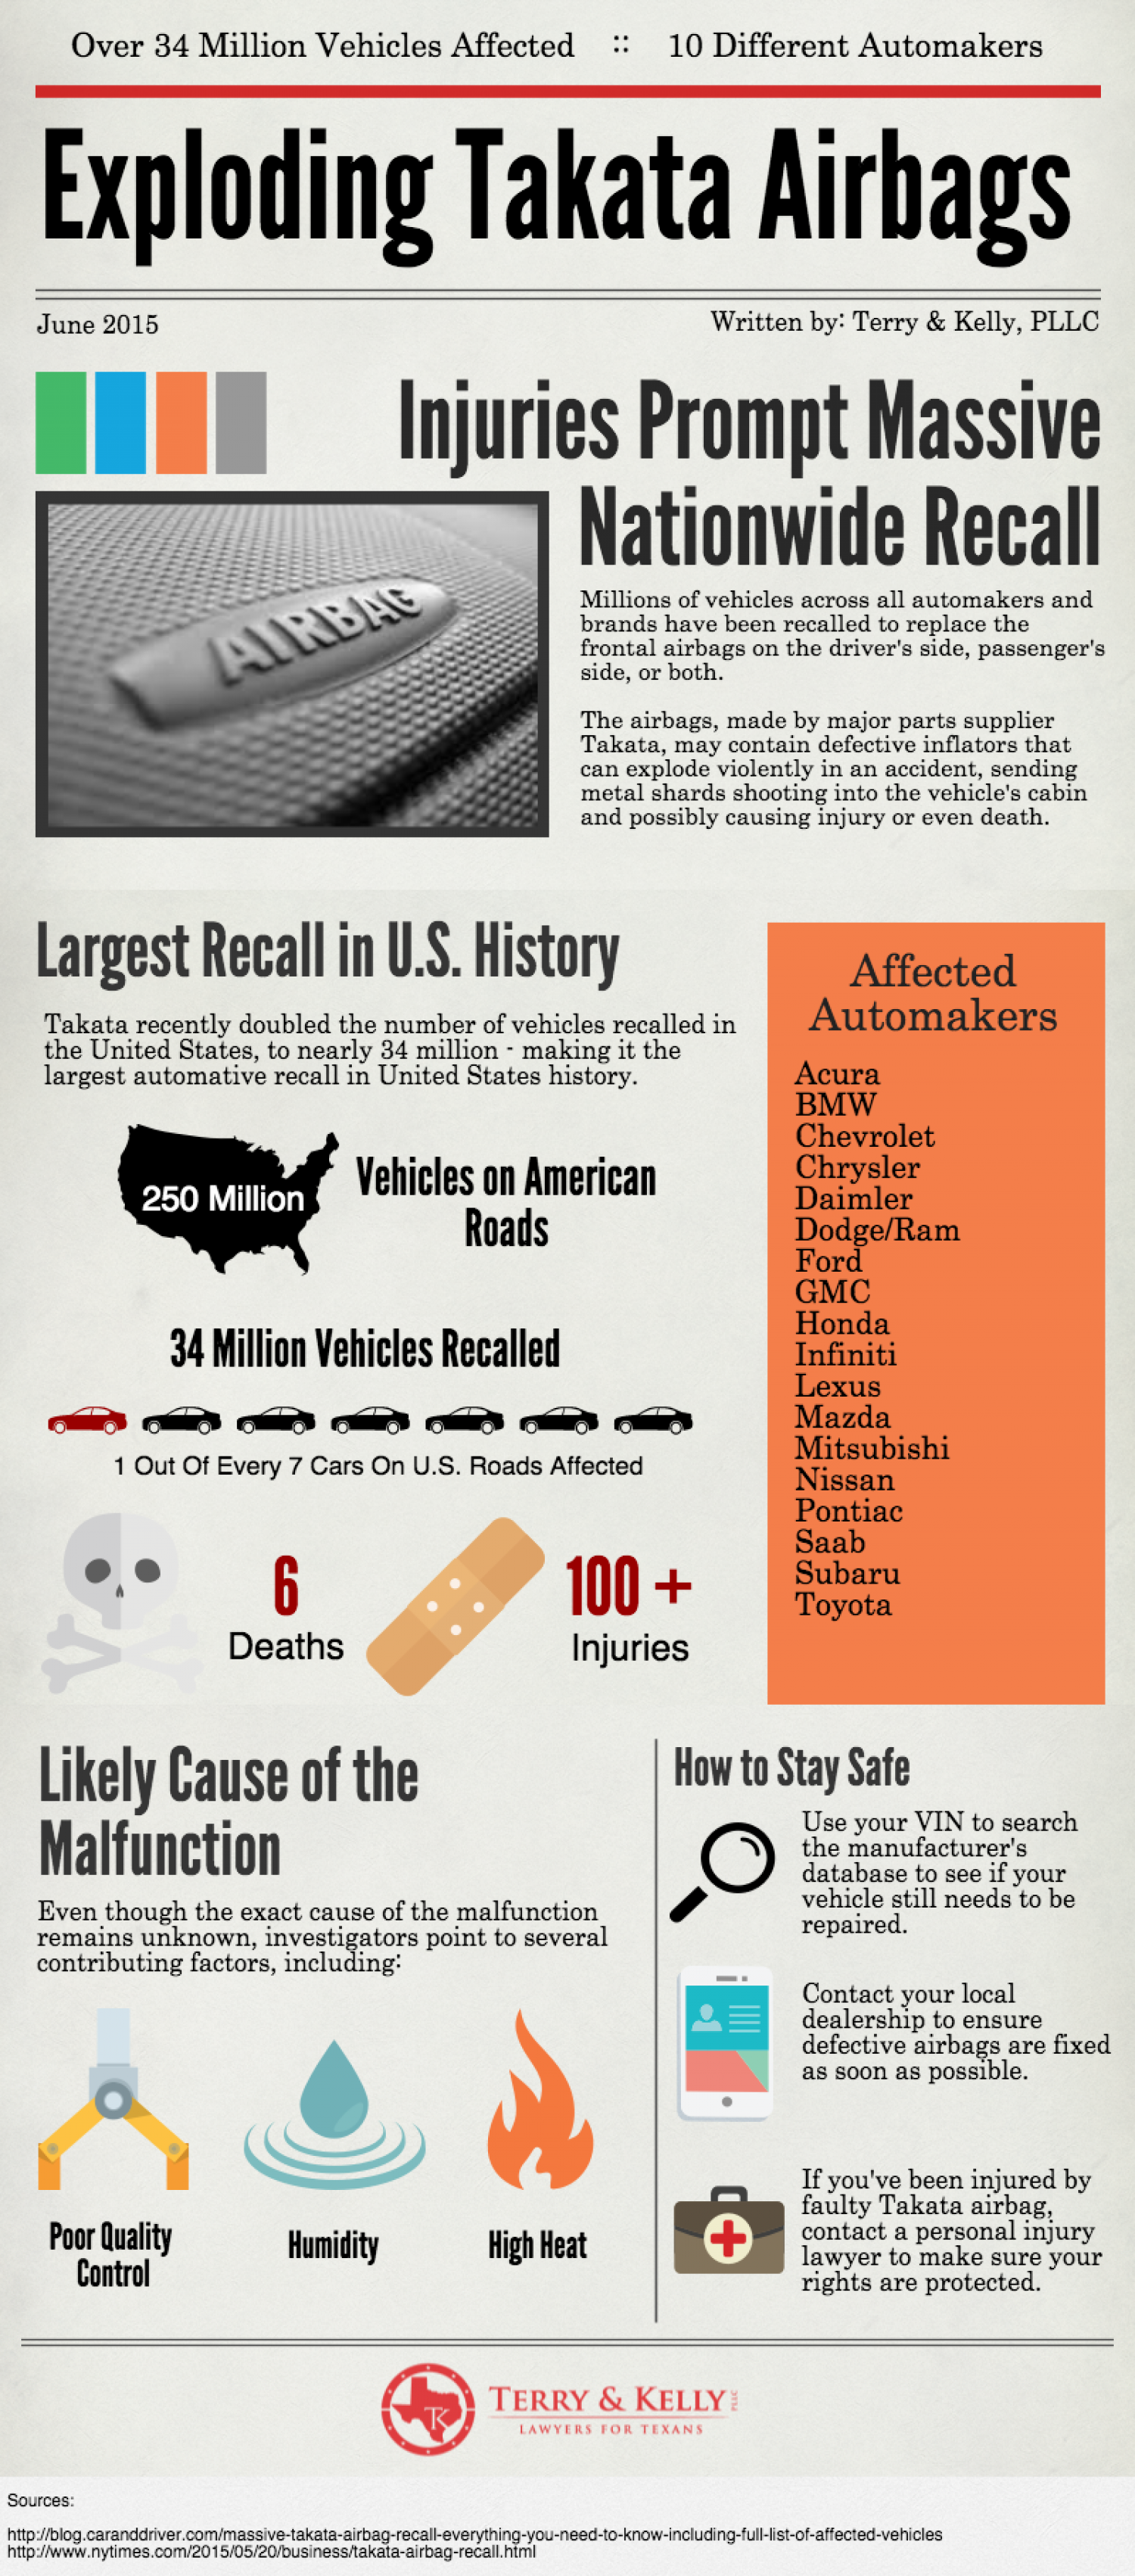 Exploding Takata Airbags Infographic